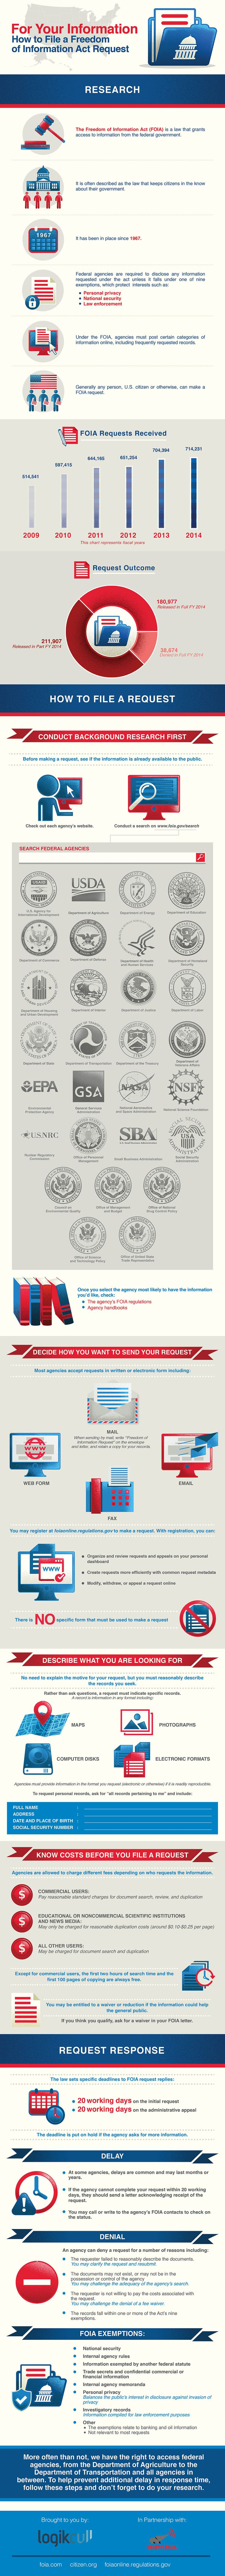 This Graphic Explains How to File a Freedom of Information Act Request